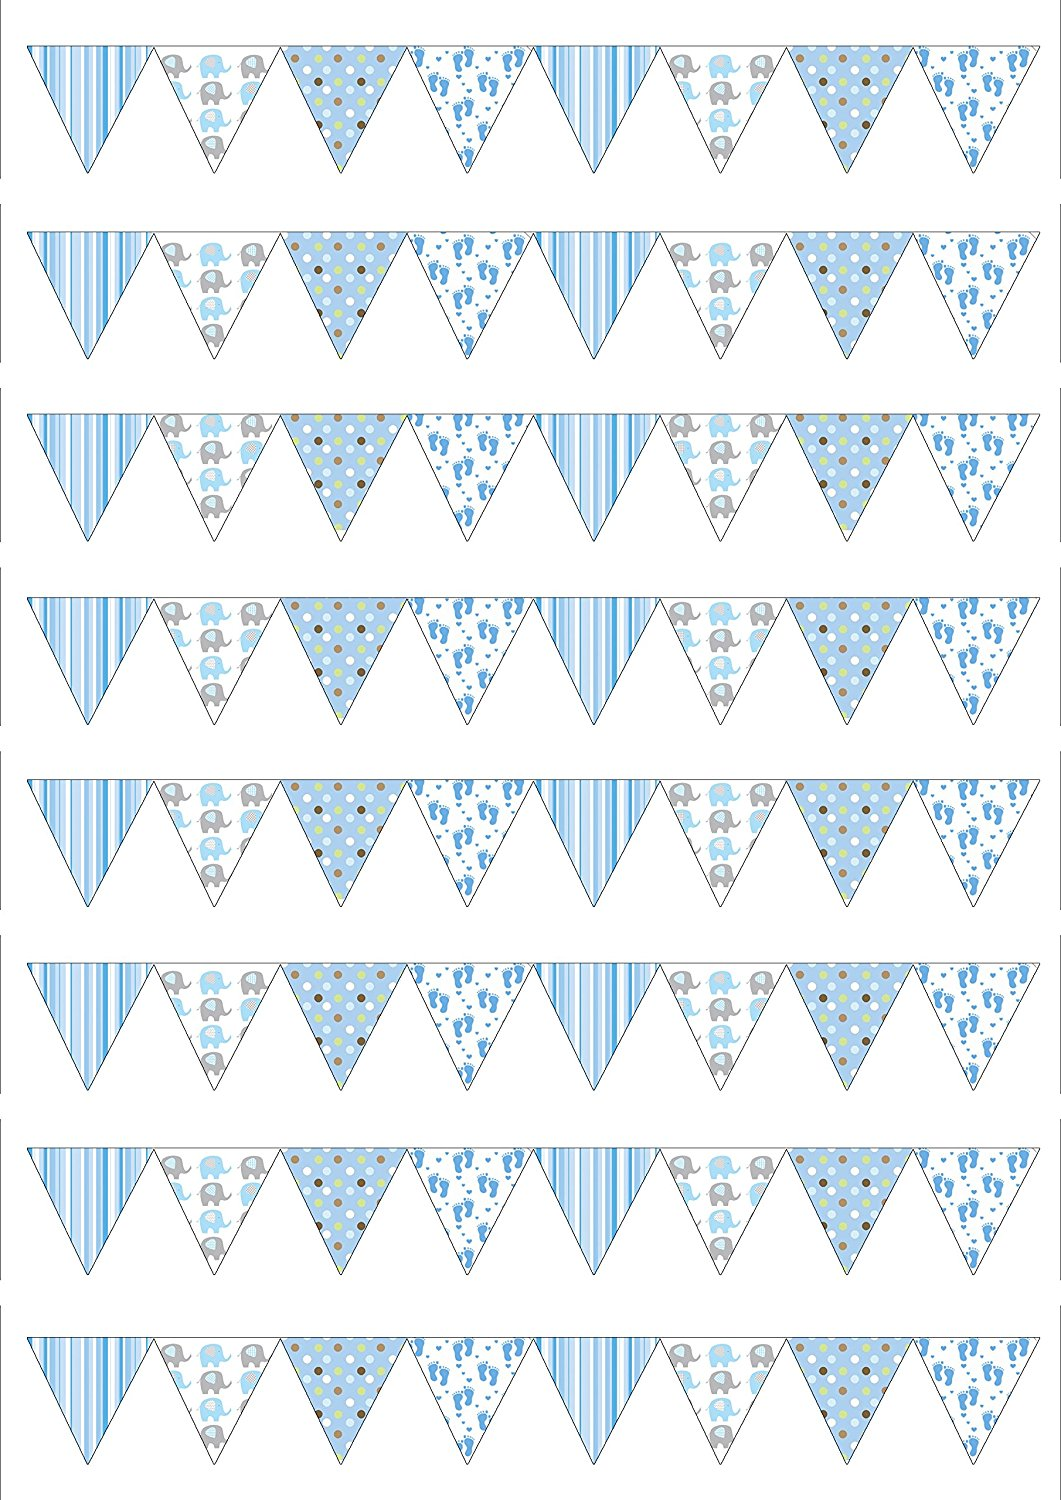 64 Baby Shower BOY SMALL Bunting flags